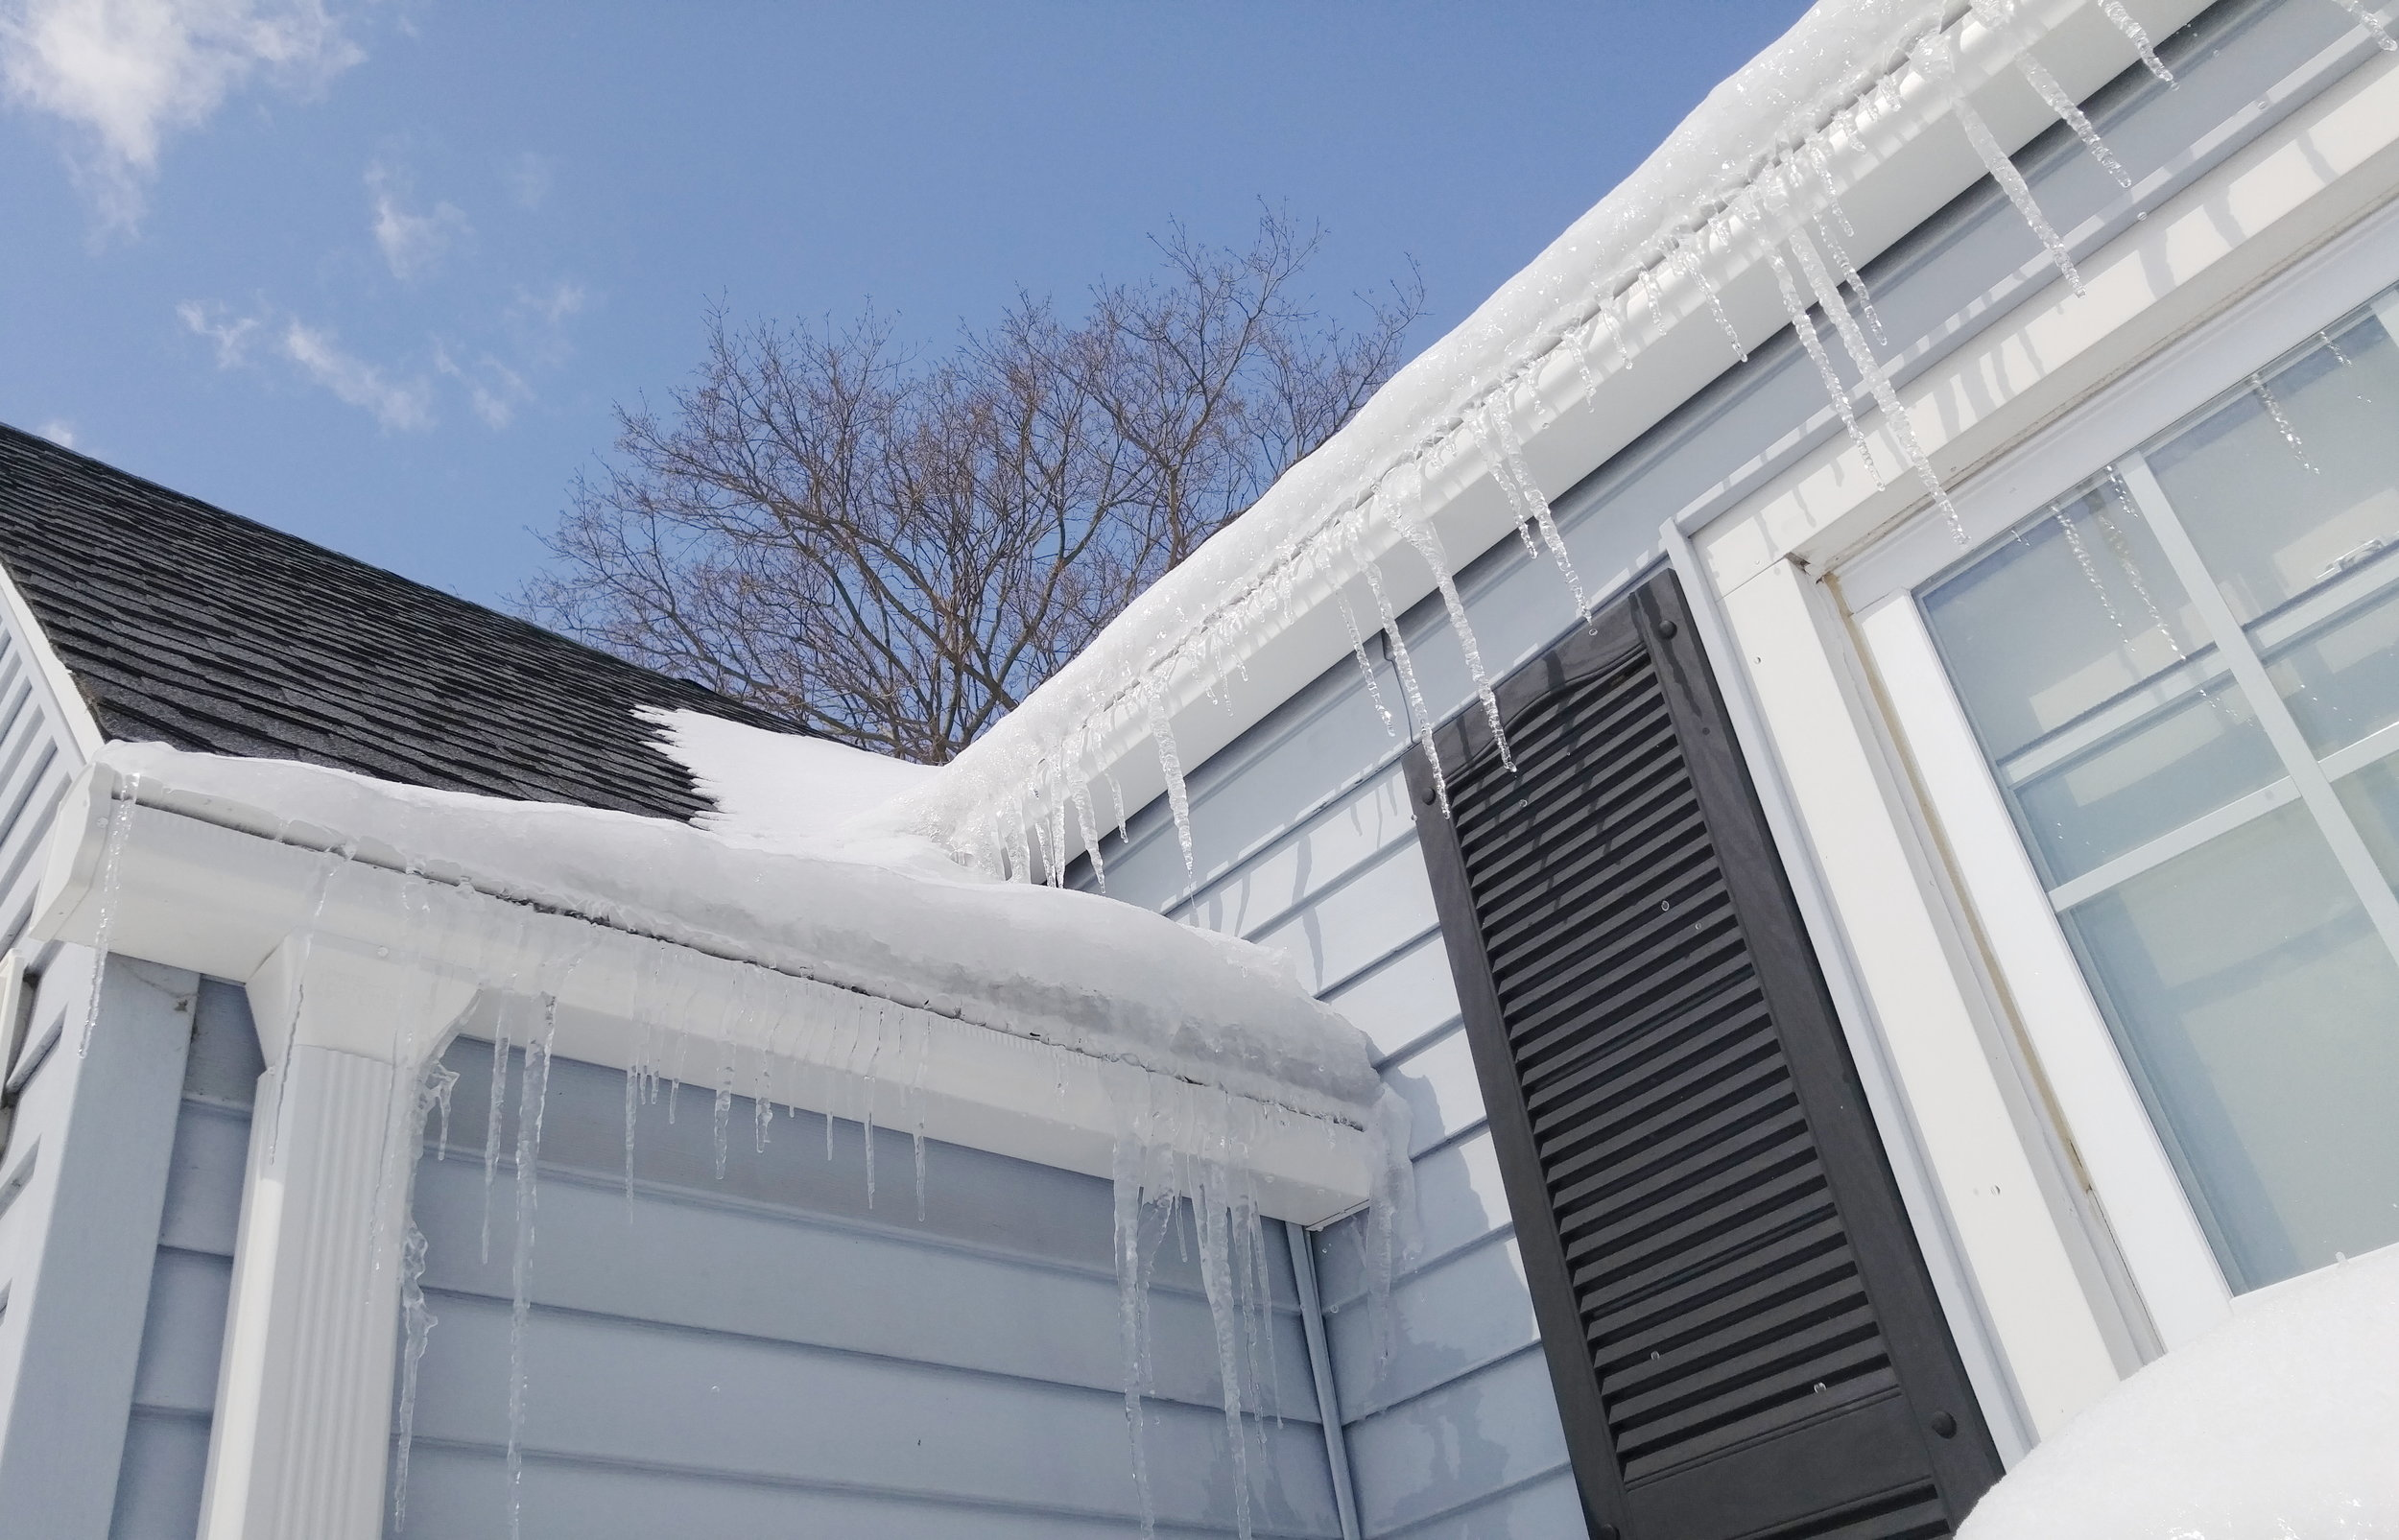 3 Things You Need to Know About Frozen Septic System Repair in Briarcliff Manor, NY